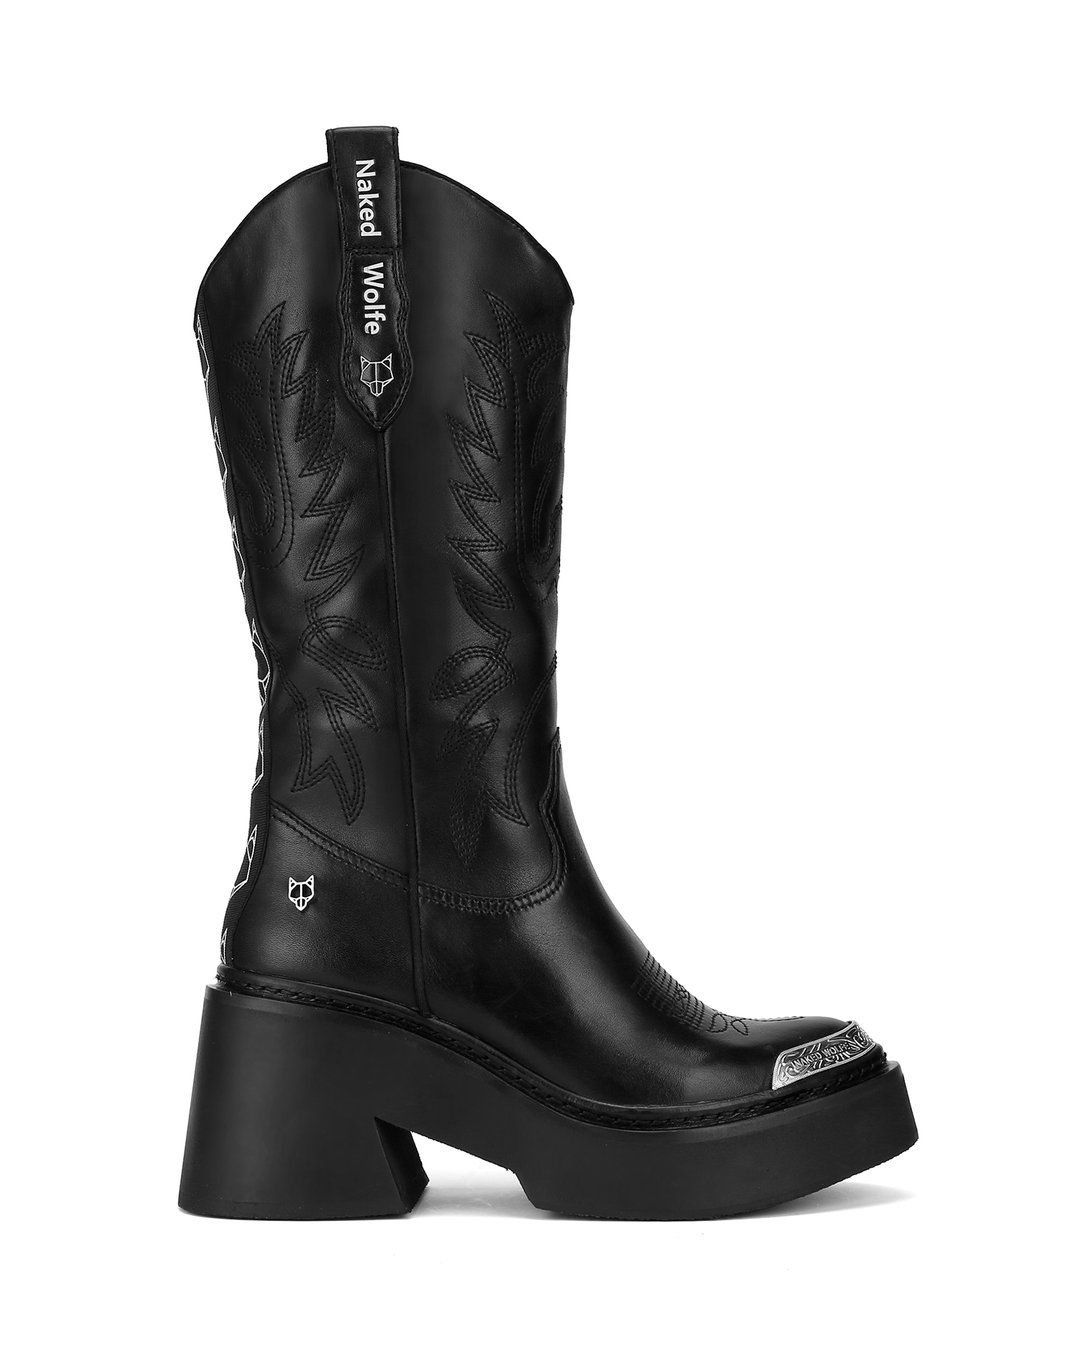 615fda437fb Rodeo Black Leather in 2019 | Looks | Boots, Cowboy boots, Black leather